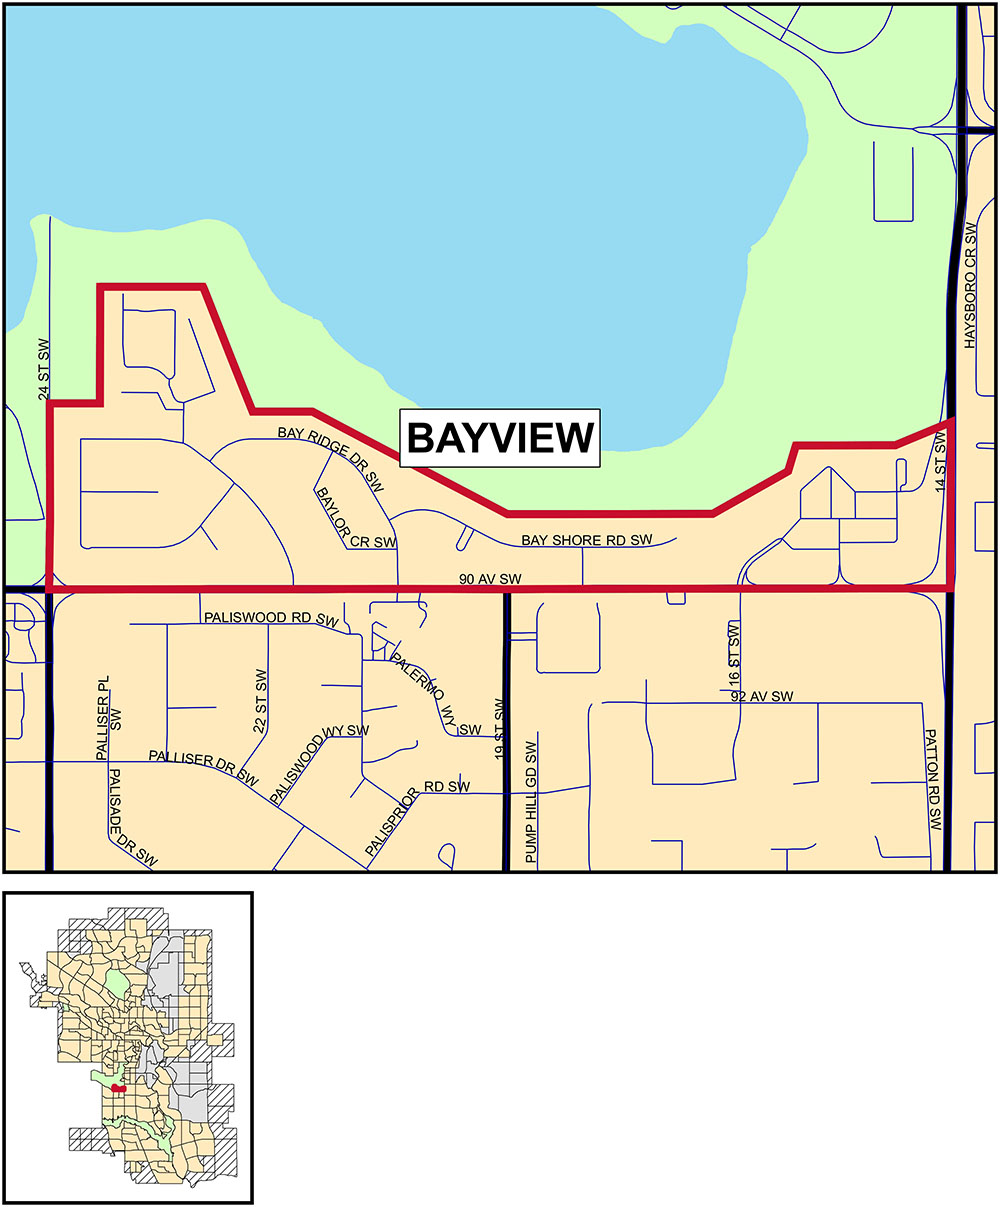 Bayview community profile